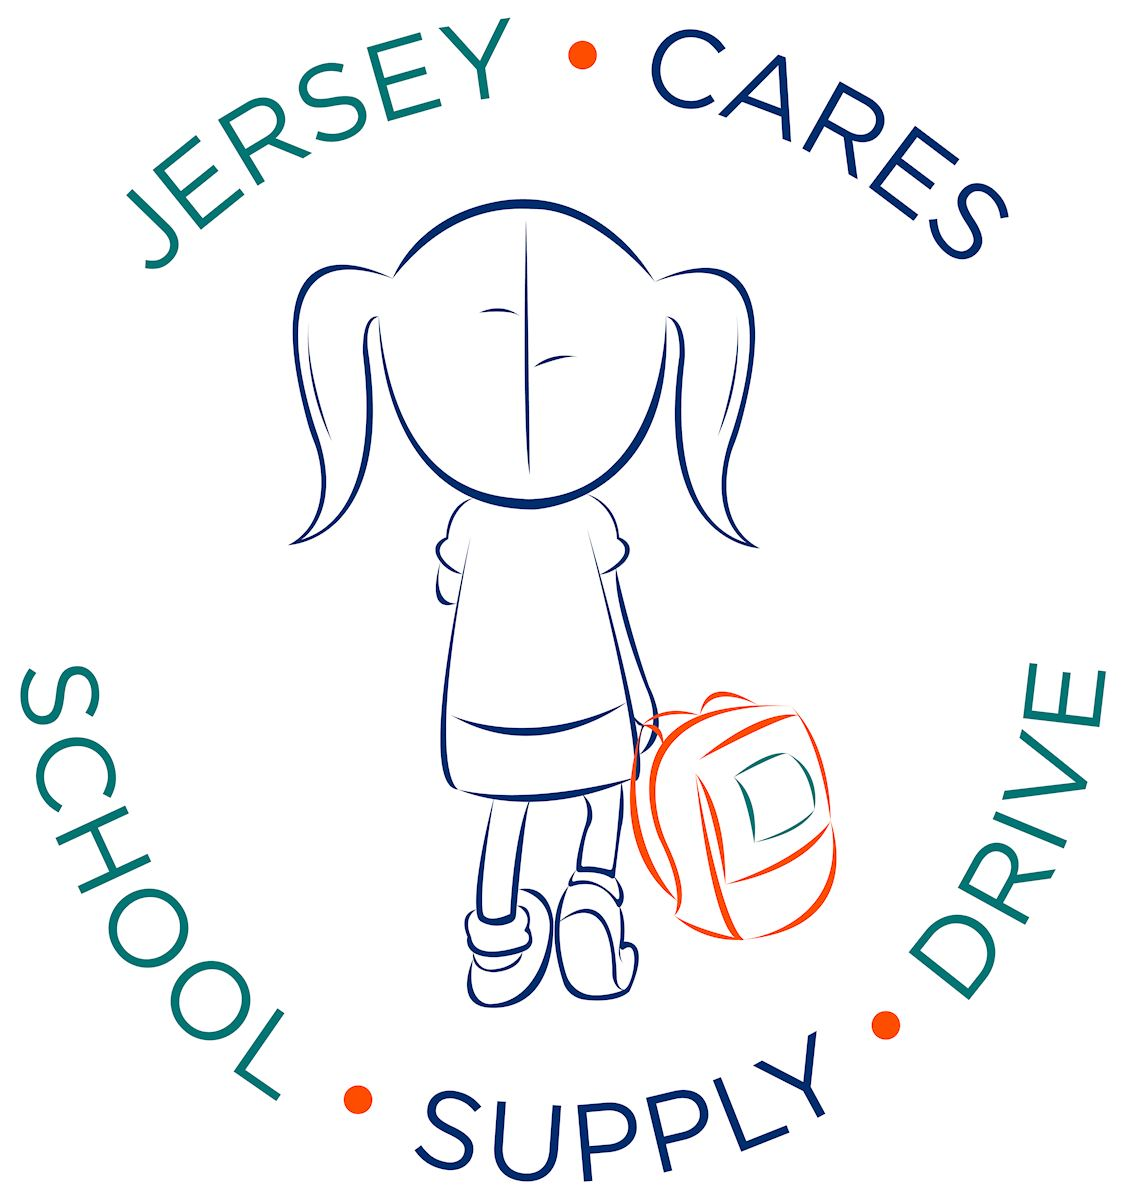 Jersey Cares   Collection Drives